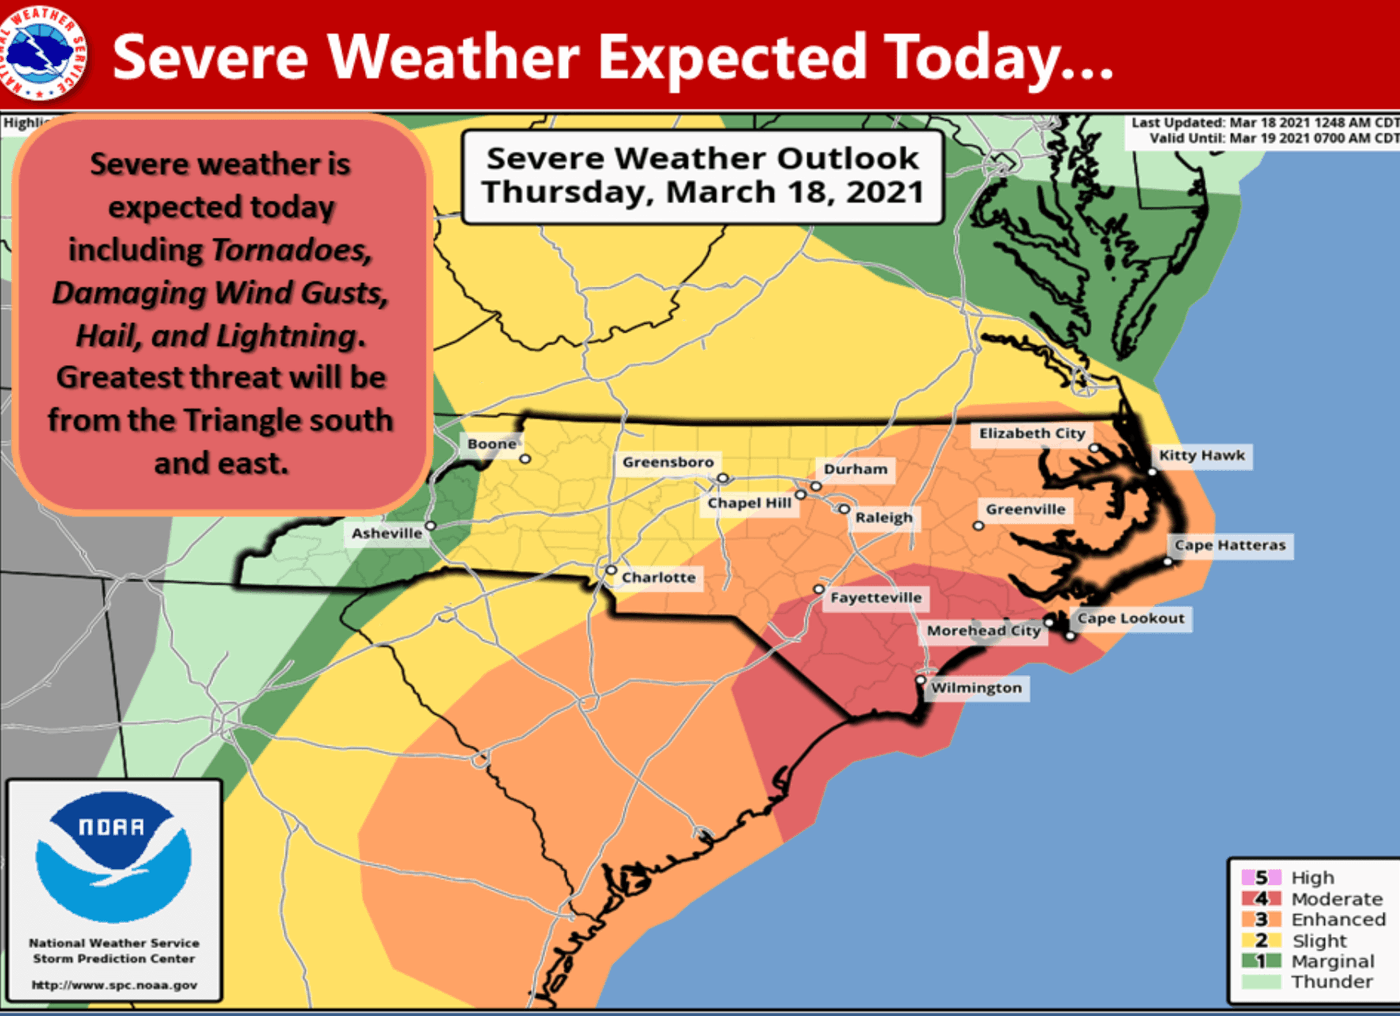 The National Weather Service indicated the risk for tornadoes was highest southeast of the Triangle. (Image via NWS)